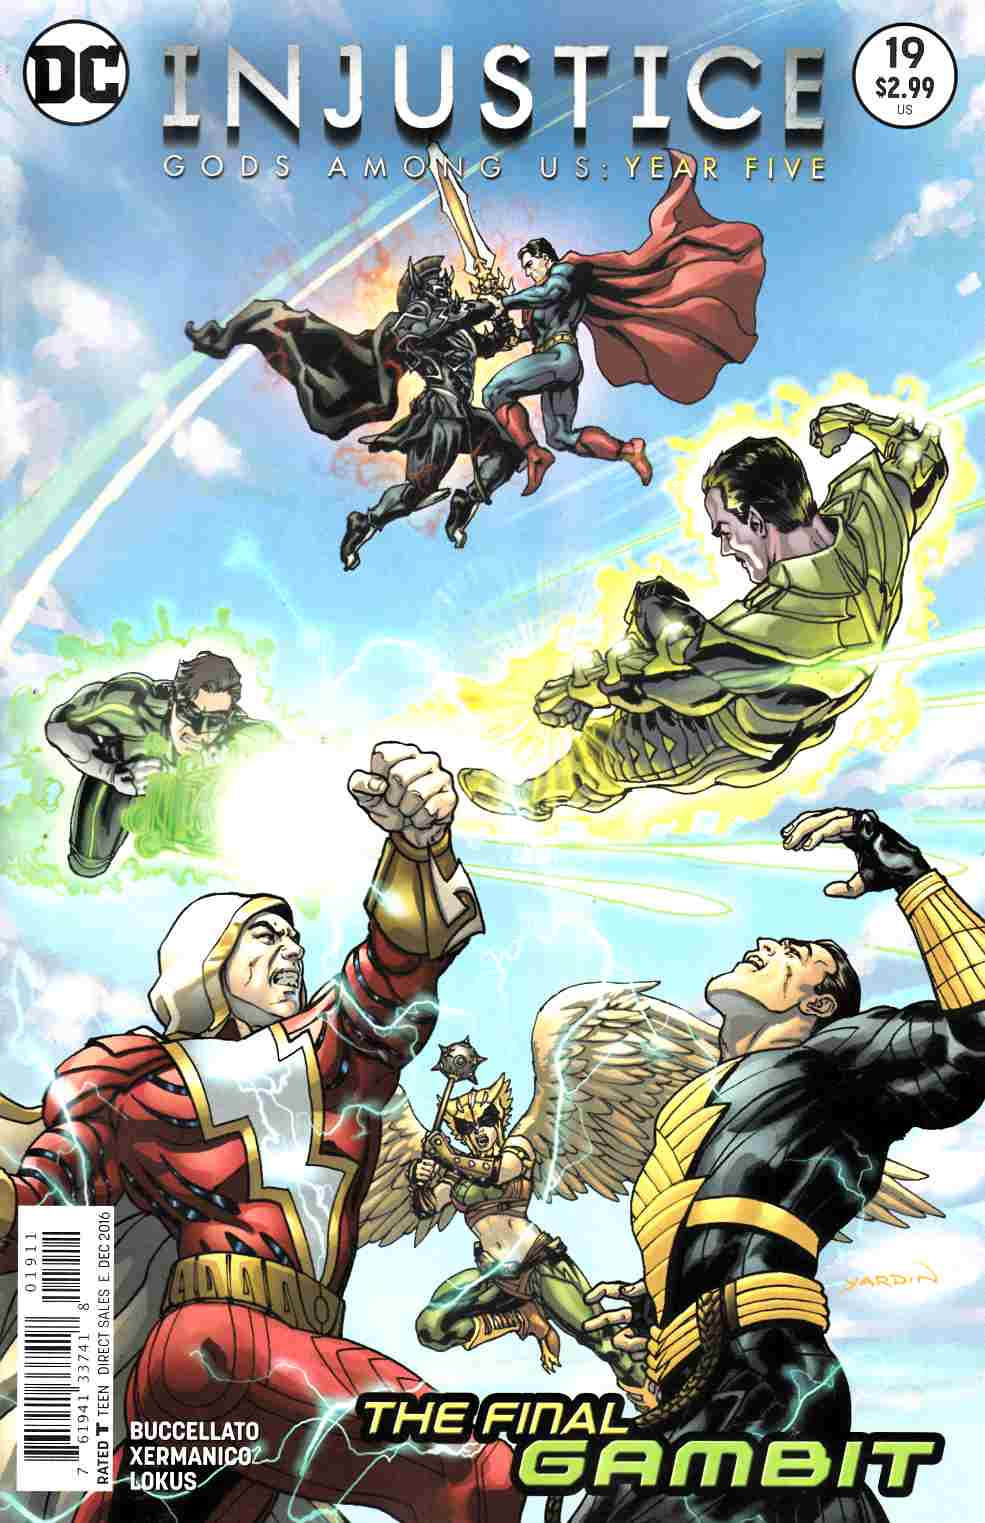 Injustice Gods Among Us Year Five #19 [DC Comic] THUMBNAIL